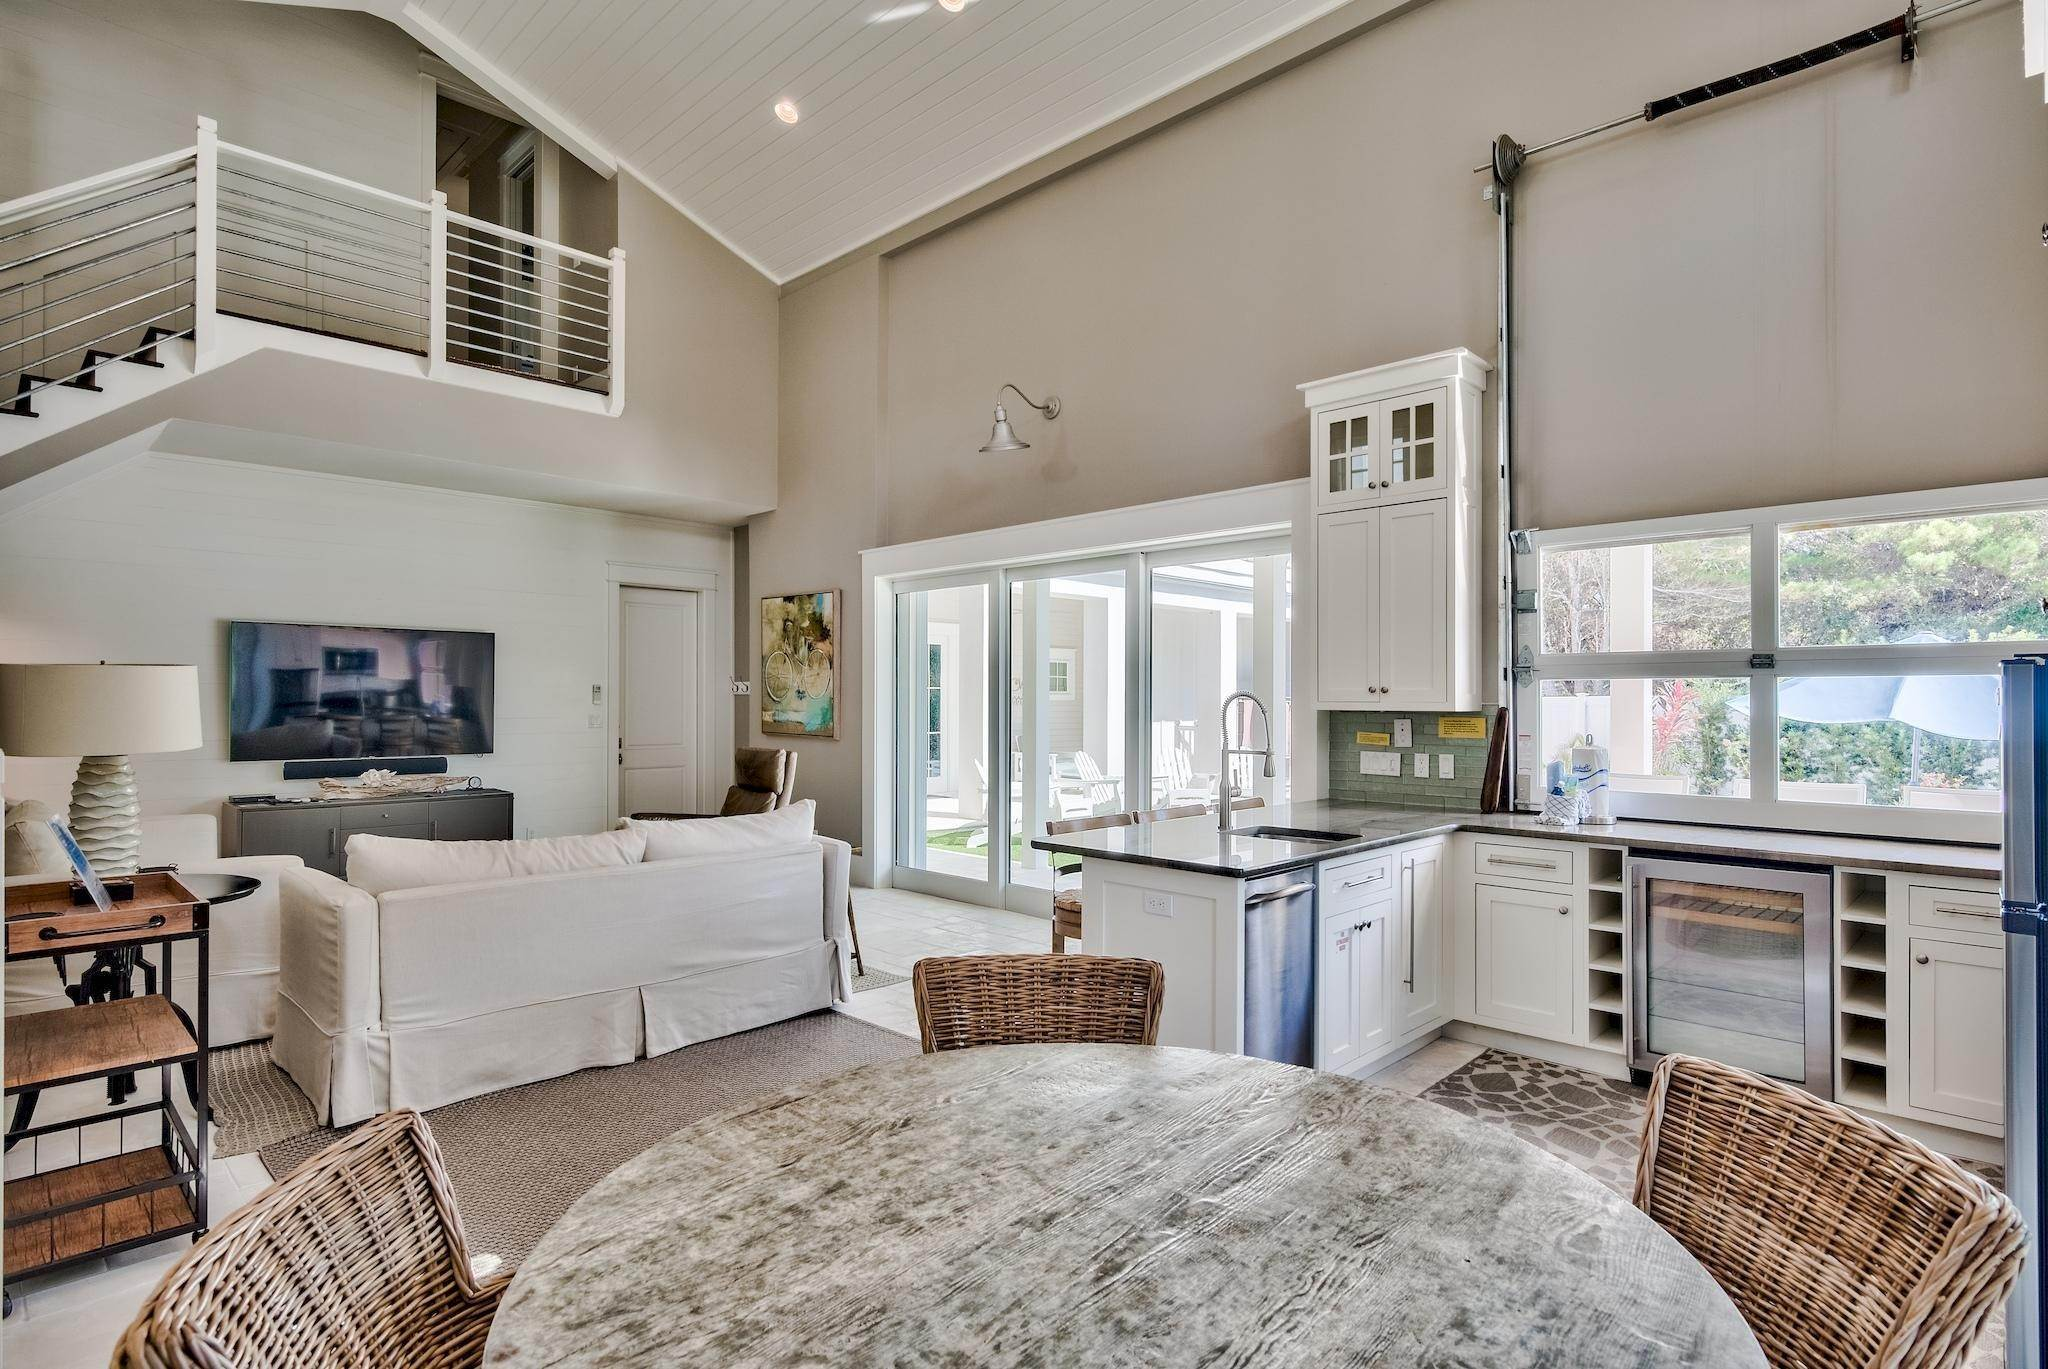 38. Single Family Home for Sale at 325 Walton Rose Lane Inlet Beach, Florida,32461 United States